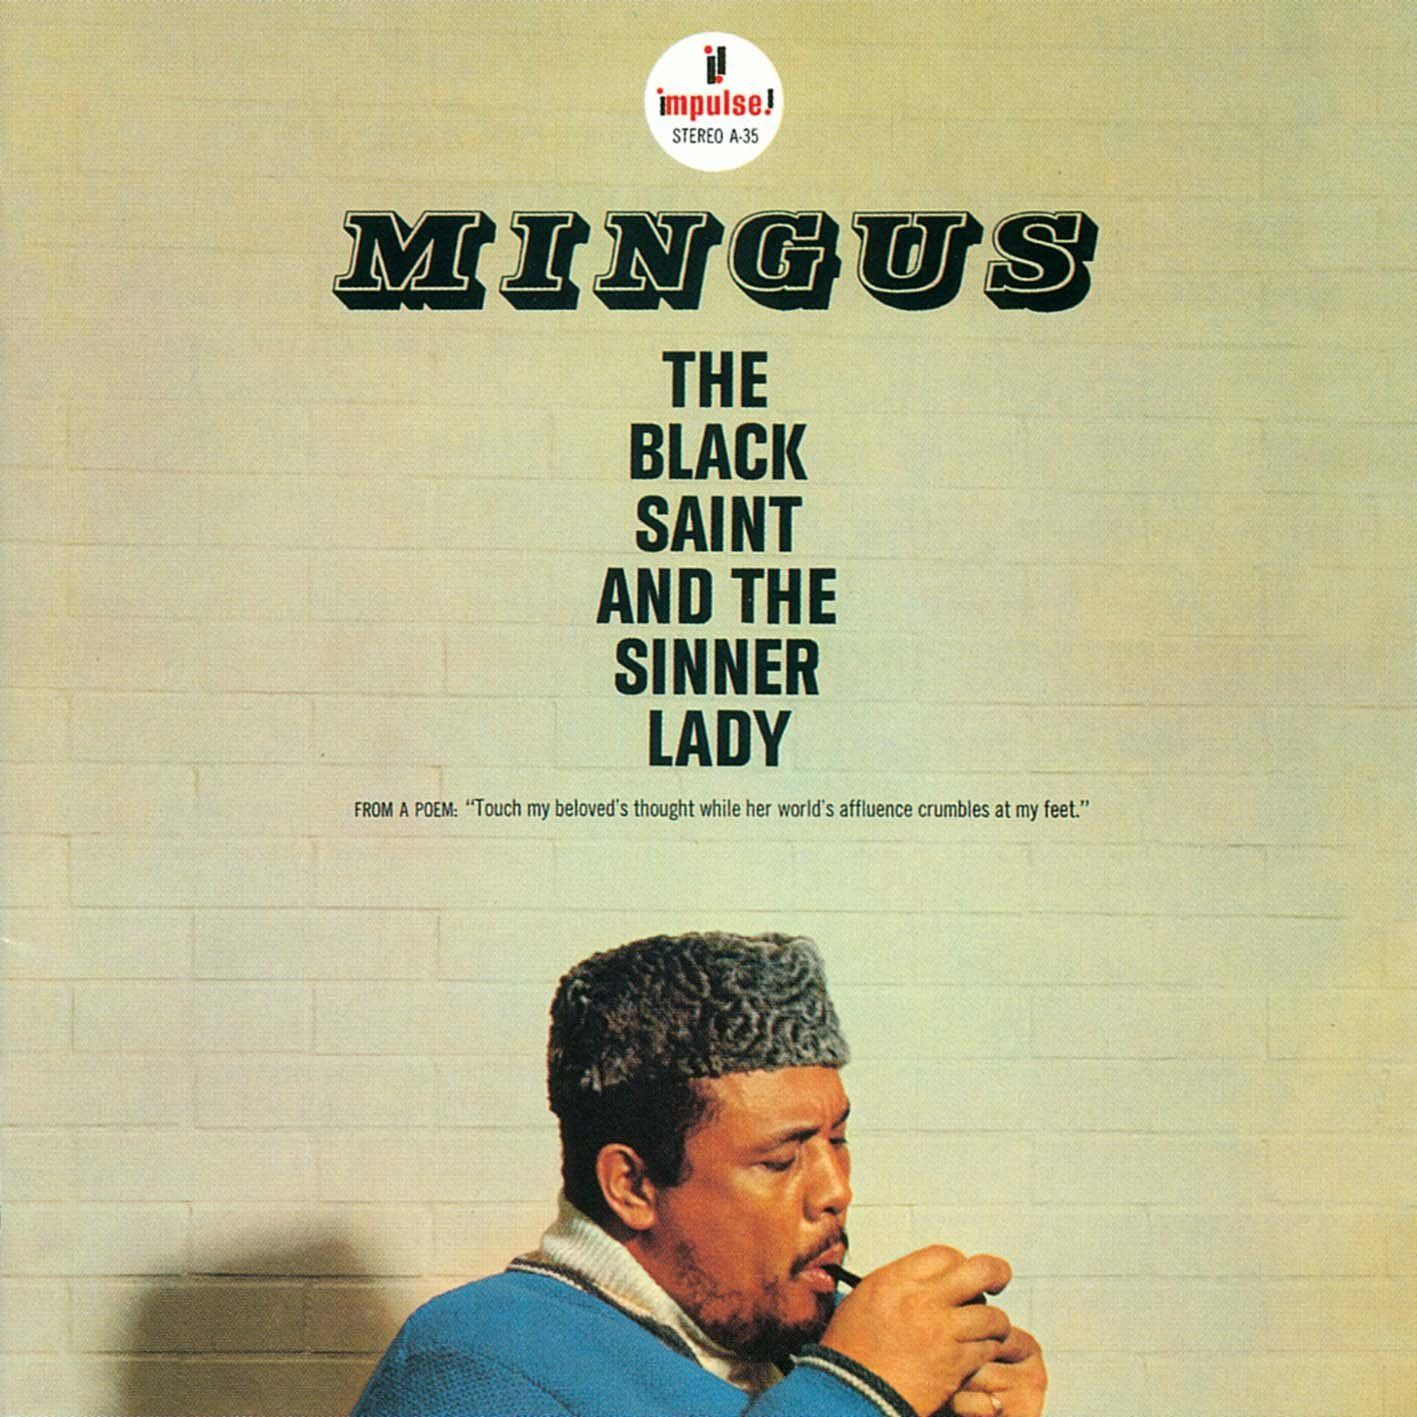 The Black Saint and the Sinner Lady - Charles Mingus // 1963 // Impulse! // Ethnic Folk-Dance